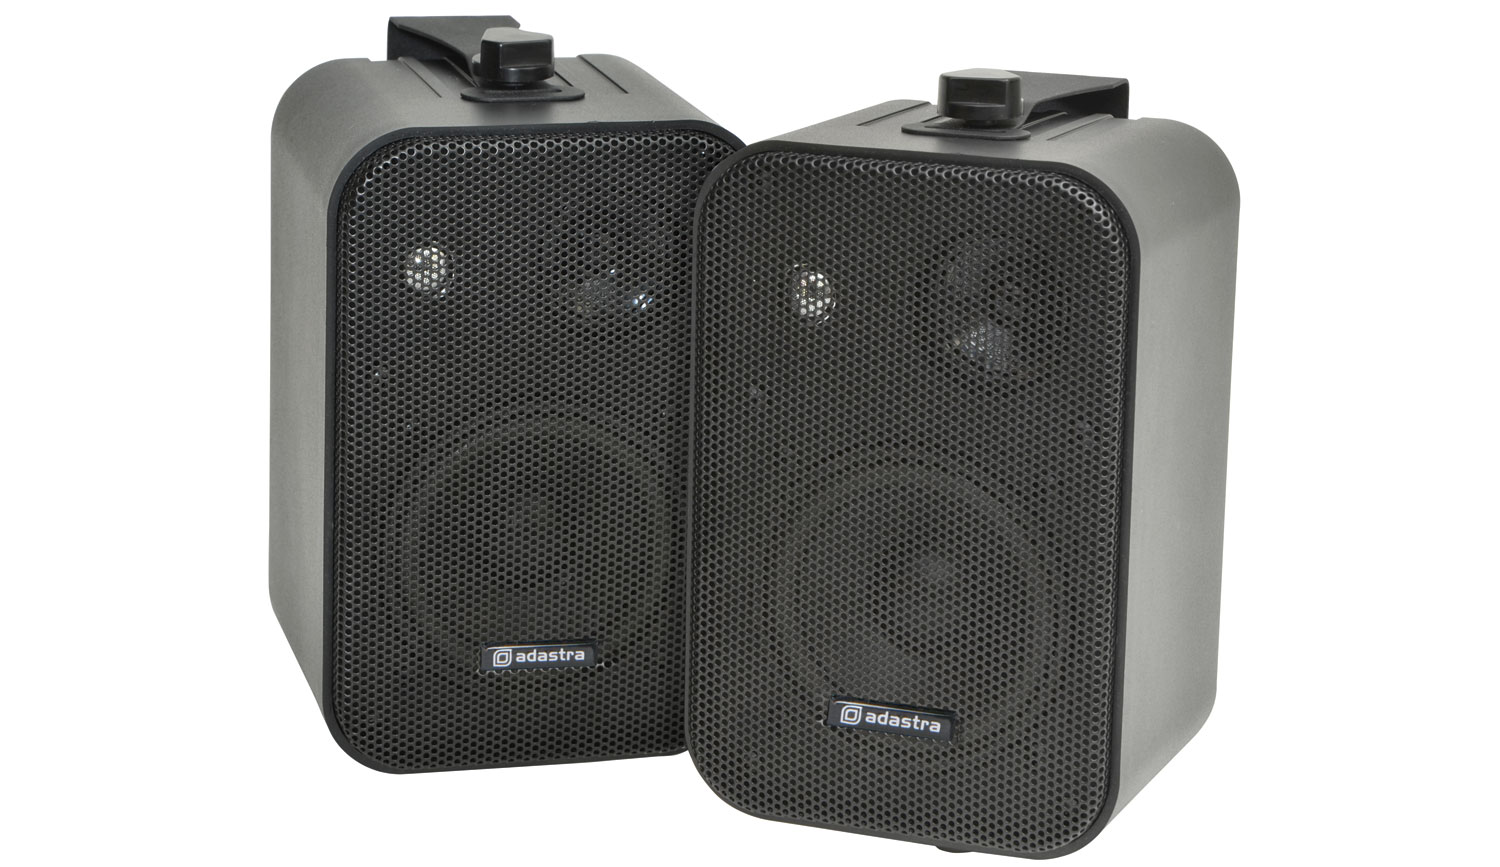 Adastra 100v line speakers 30W black - pair